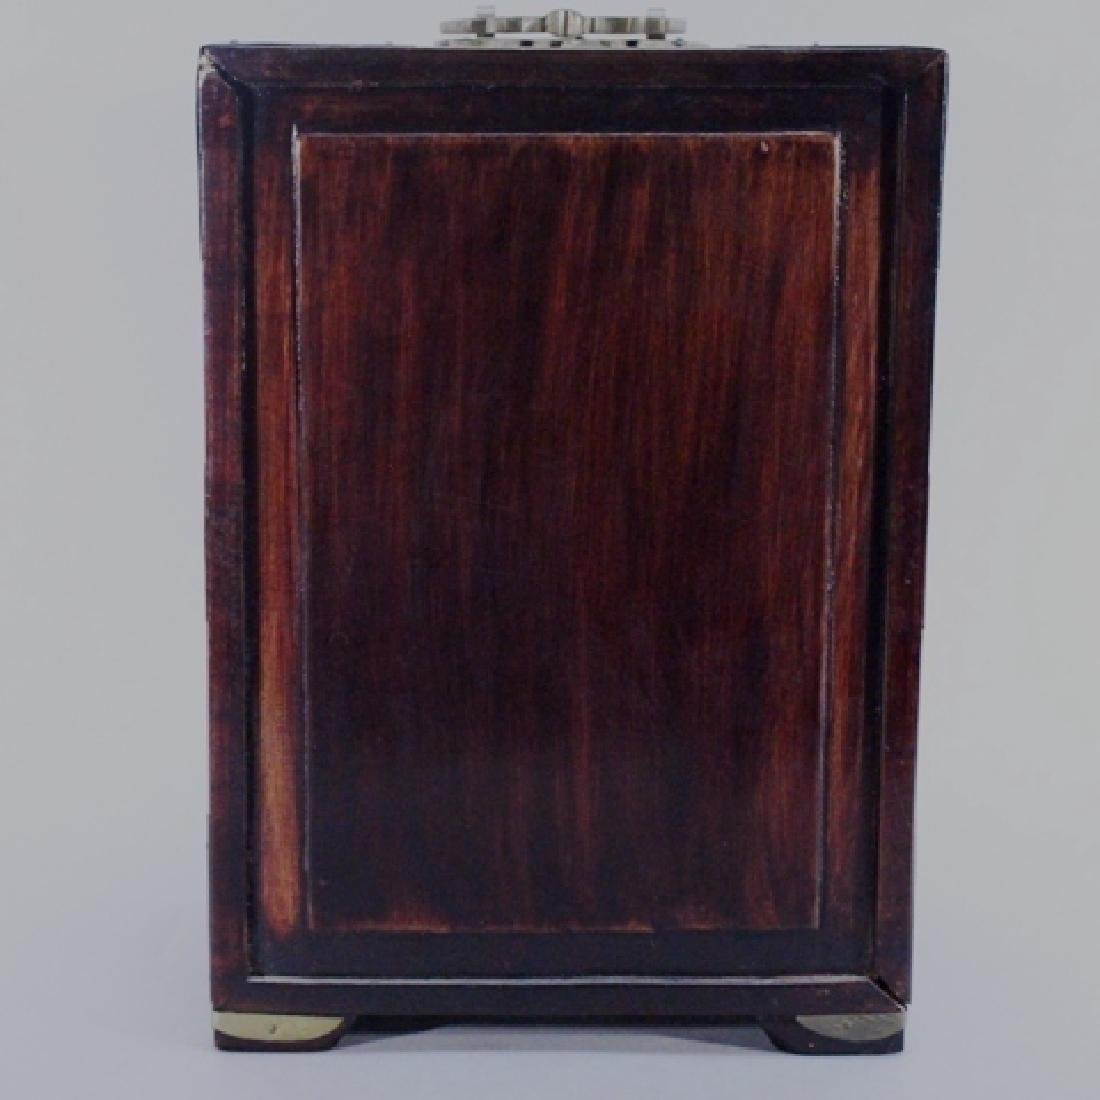 Chinese Rosewood Jewelry Box with Bone Accents - 6